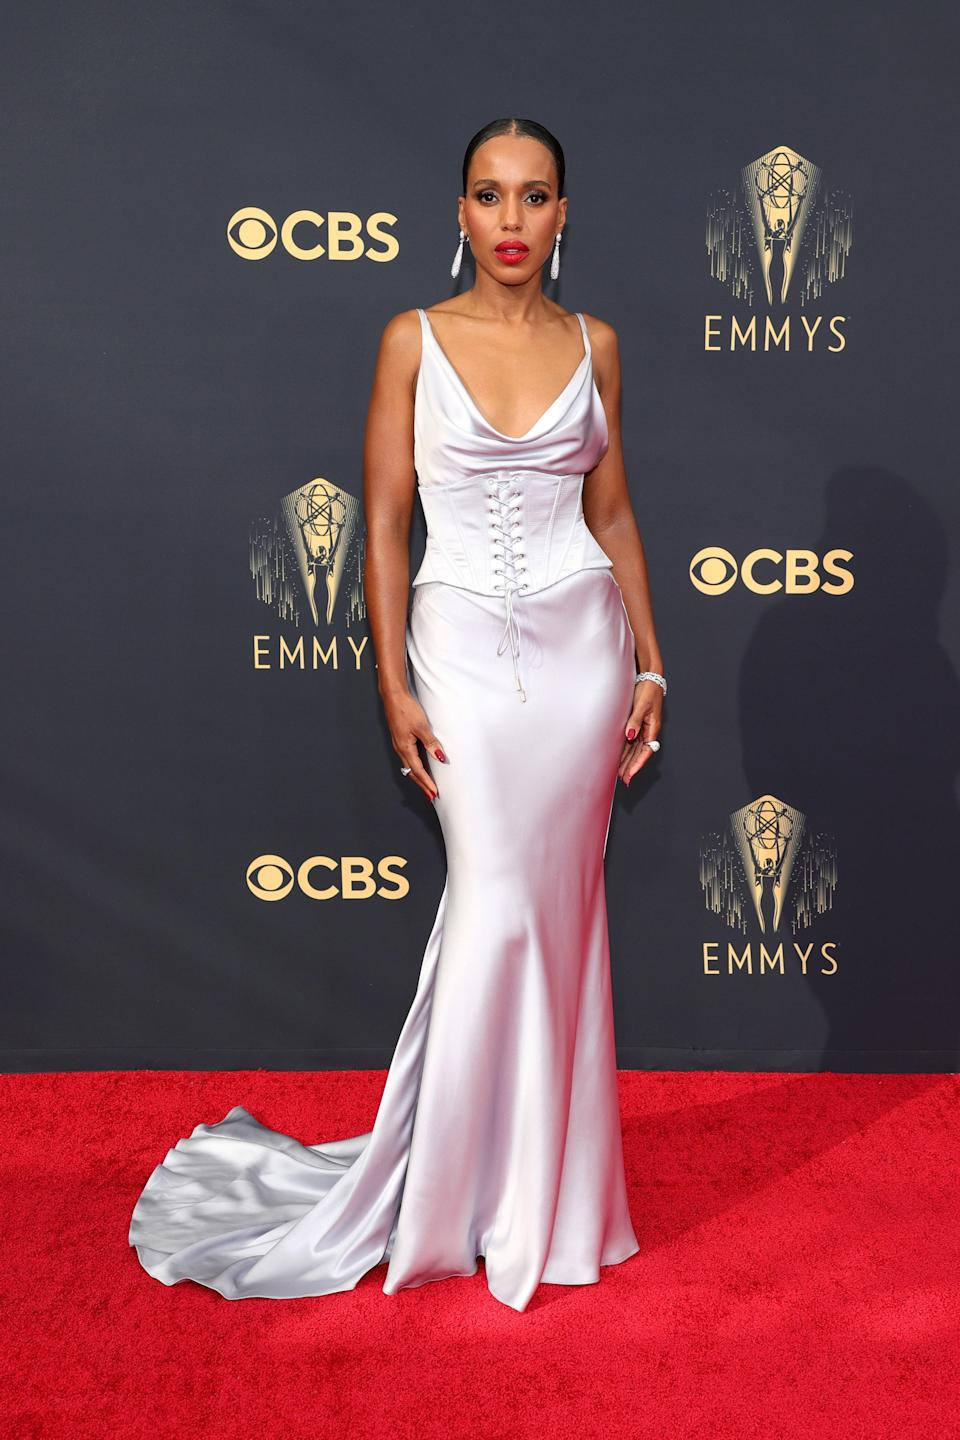 Kerry looked every bit the Old Hollywood star in her silvery-platinum Etro gown with a corset detail.